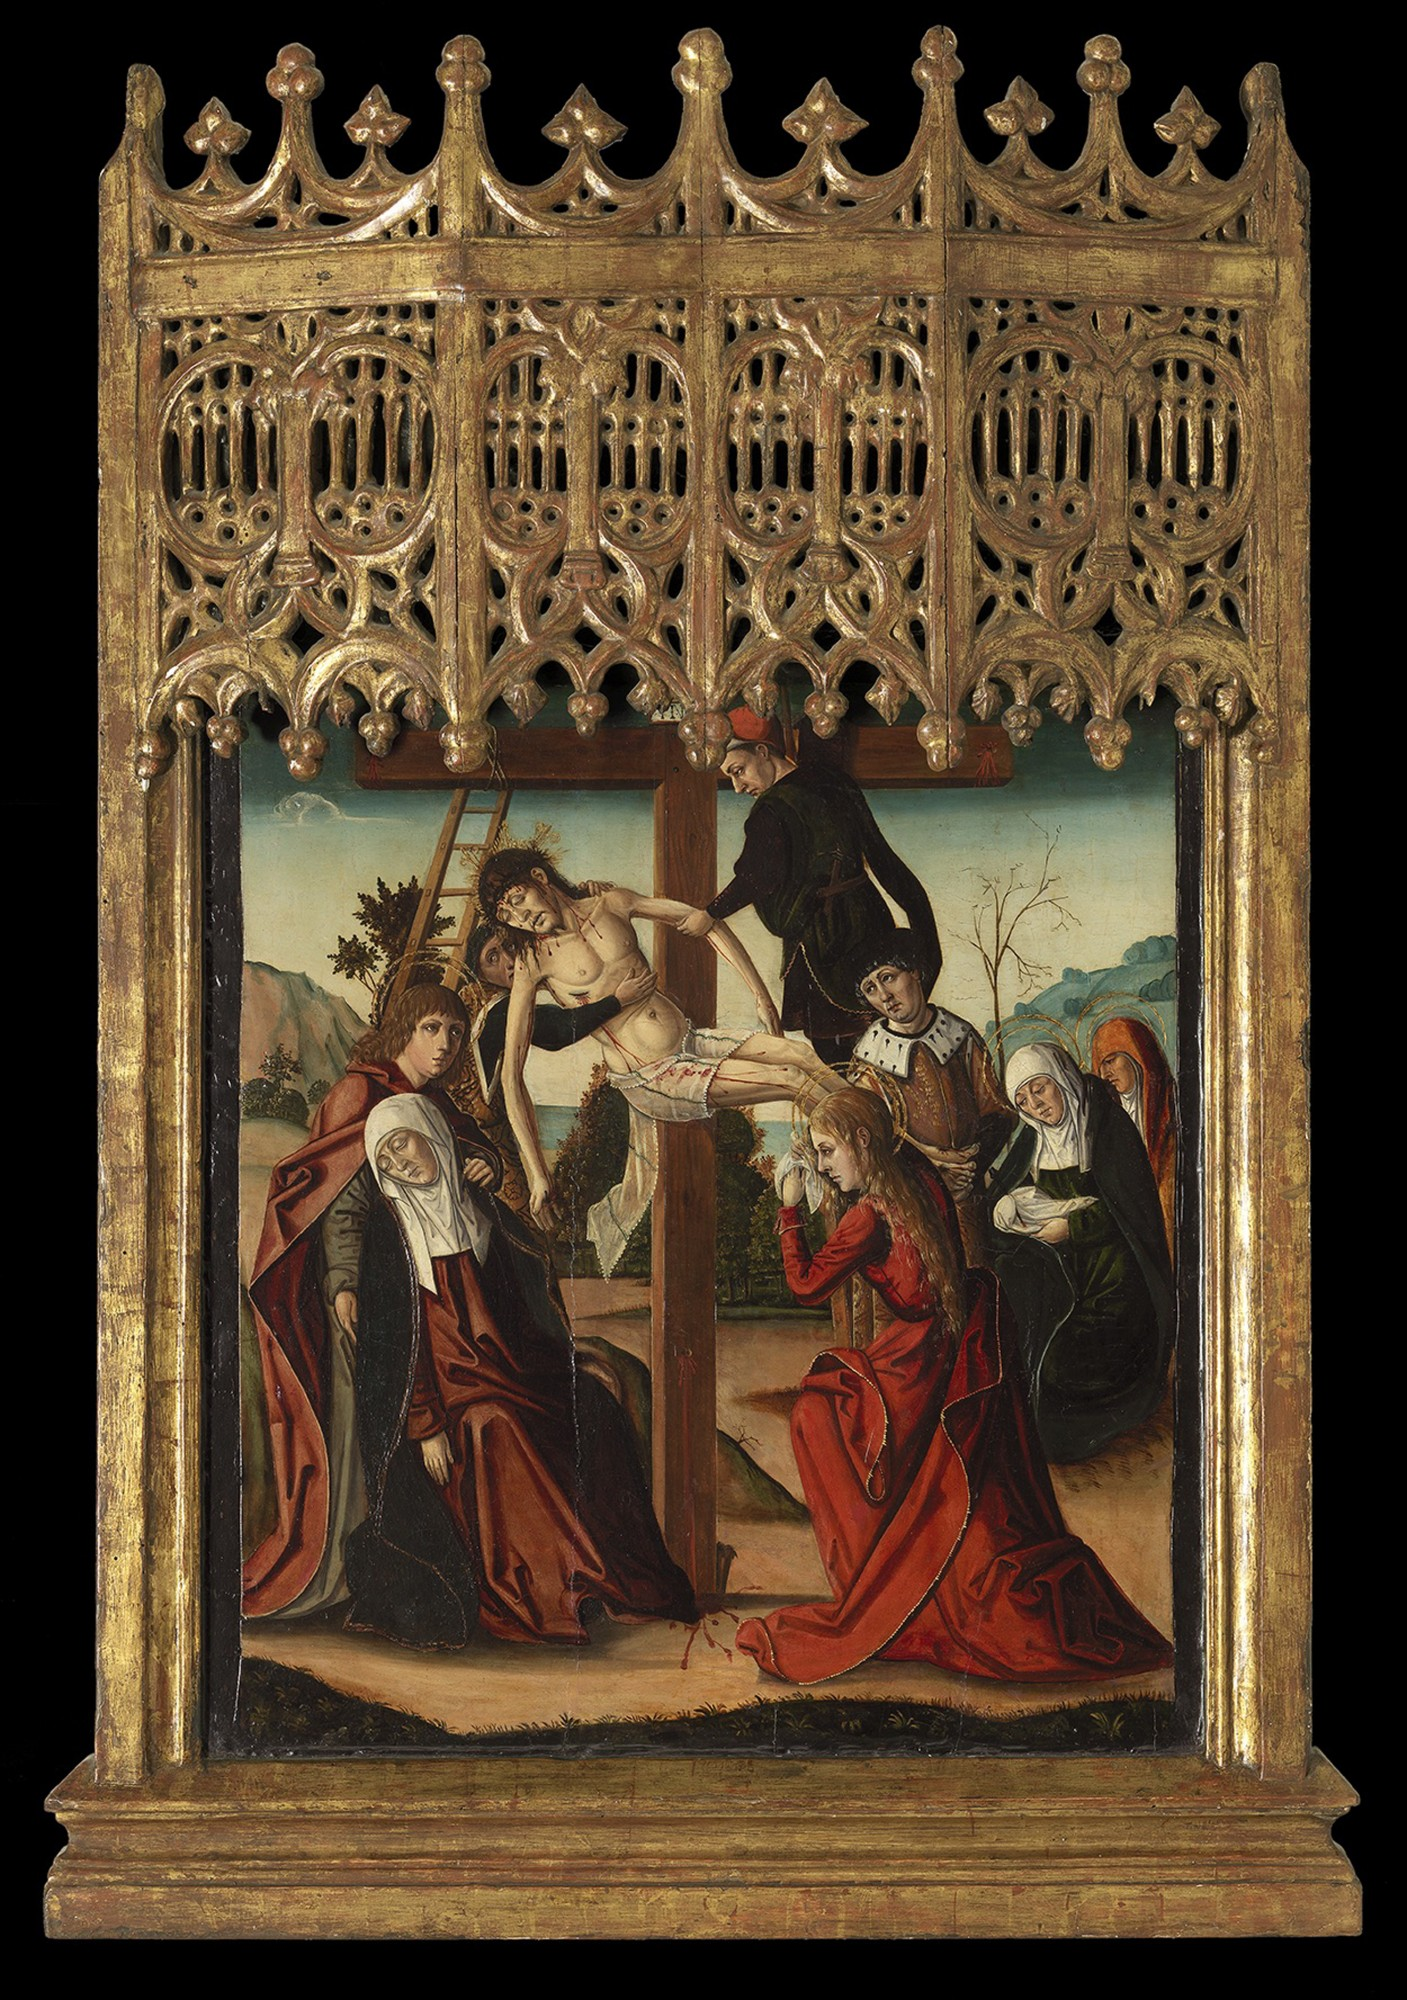 The Descent from the Cross, Francisco de Osona (c. 1465 – Valencia –